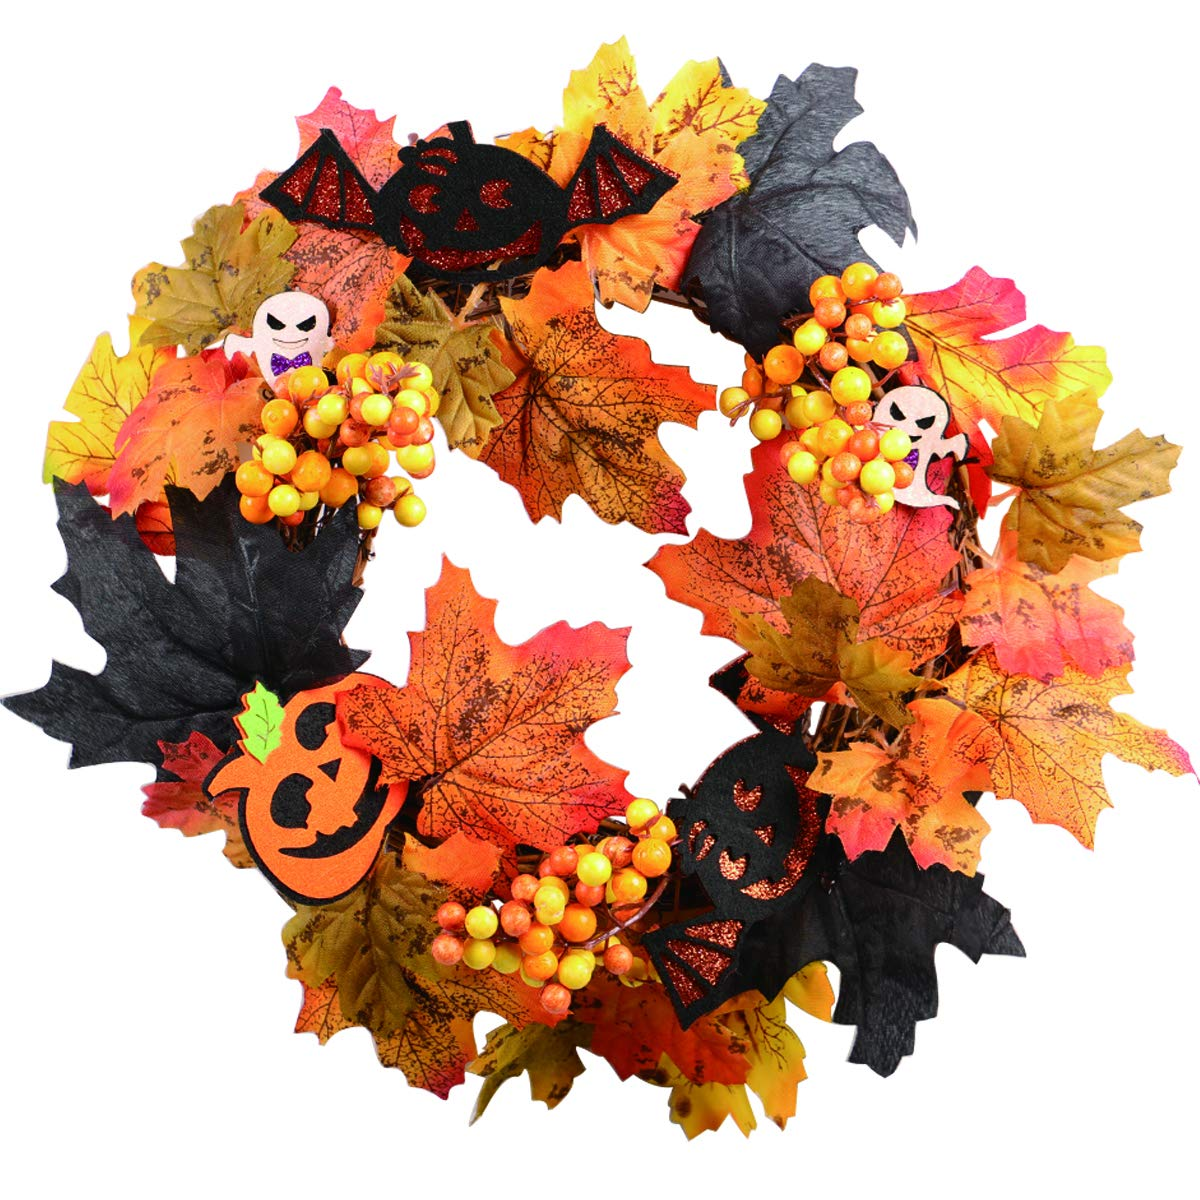 Desun Fall Door Wreath for Halloween 12 inch- Autumn Berries and Foliage Enhance Home Decor,Wreath for Fron Door, Outdoor or Indoor Décor Use,Every Day Nearly Natural Home Hanger Decor with Giftbox